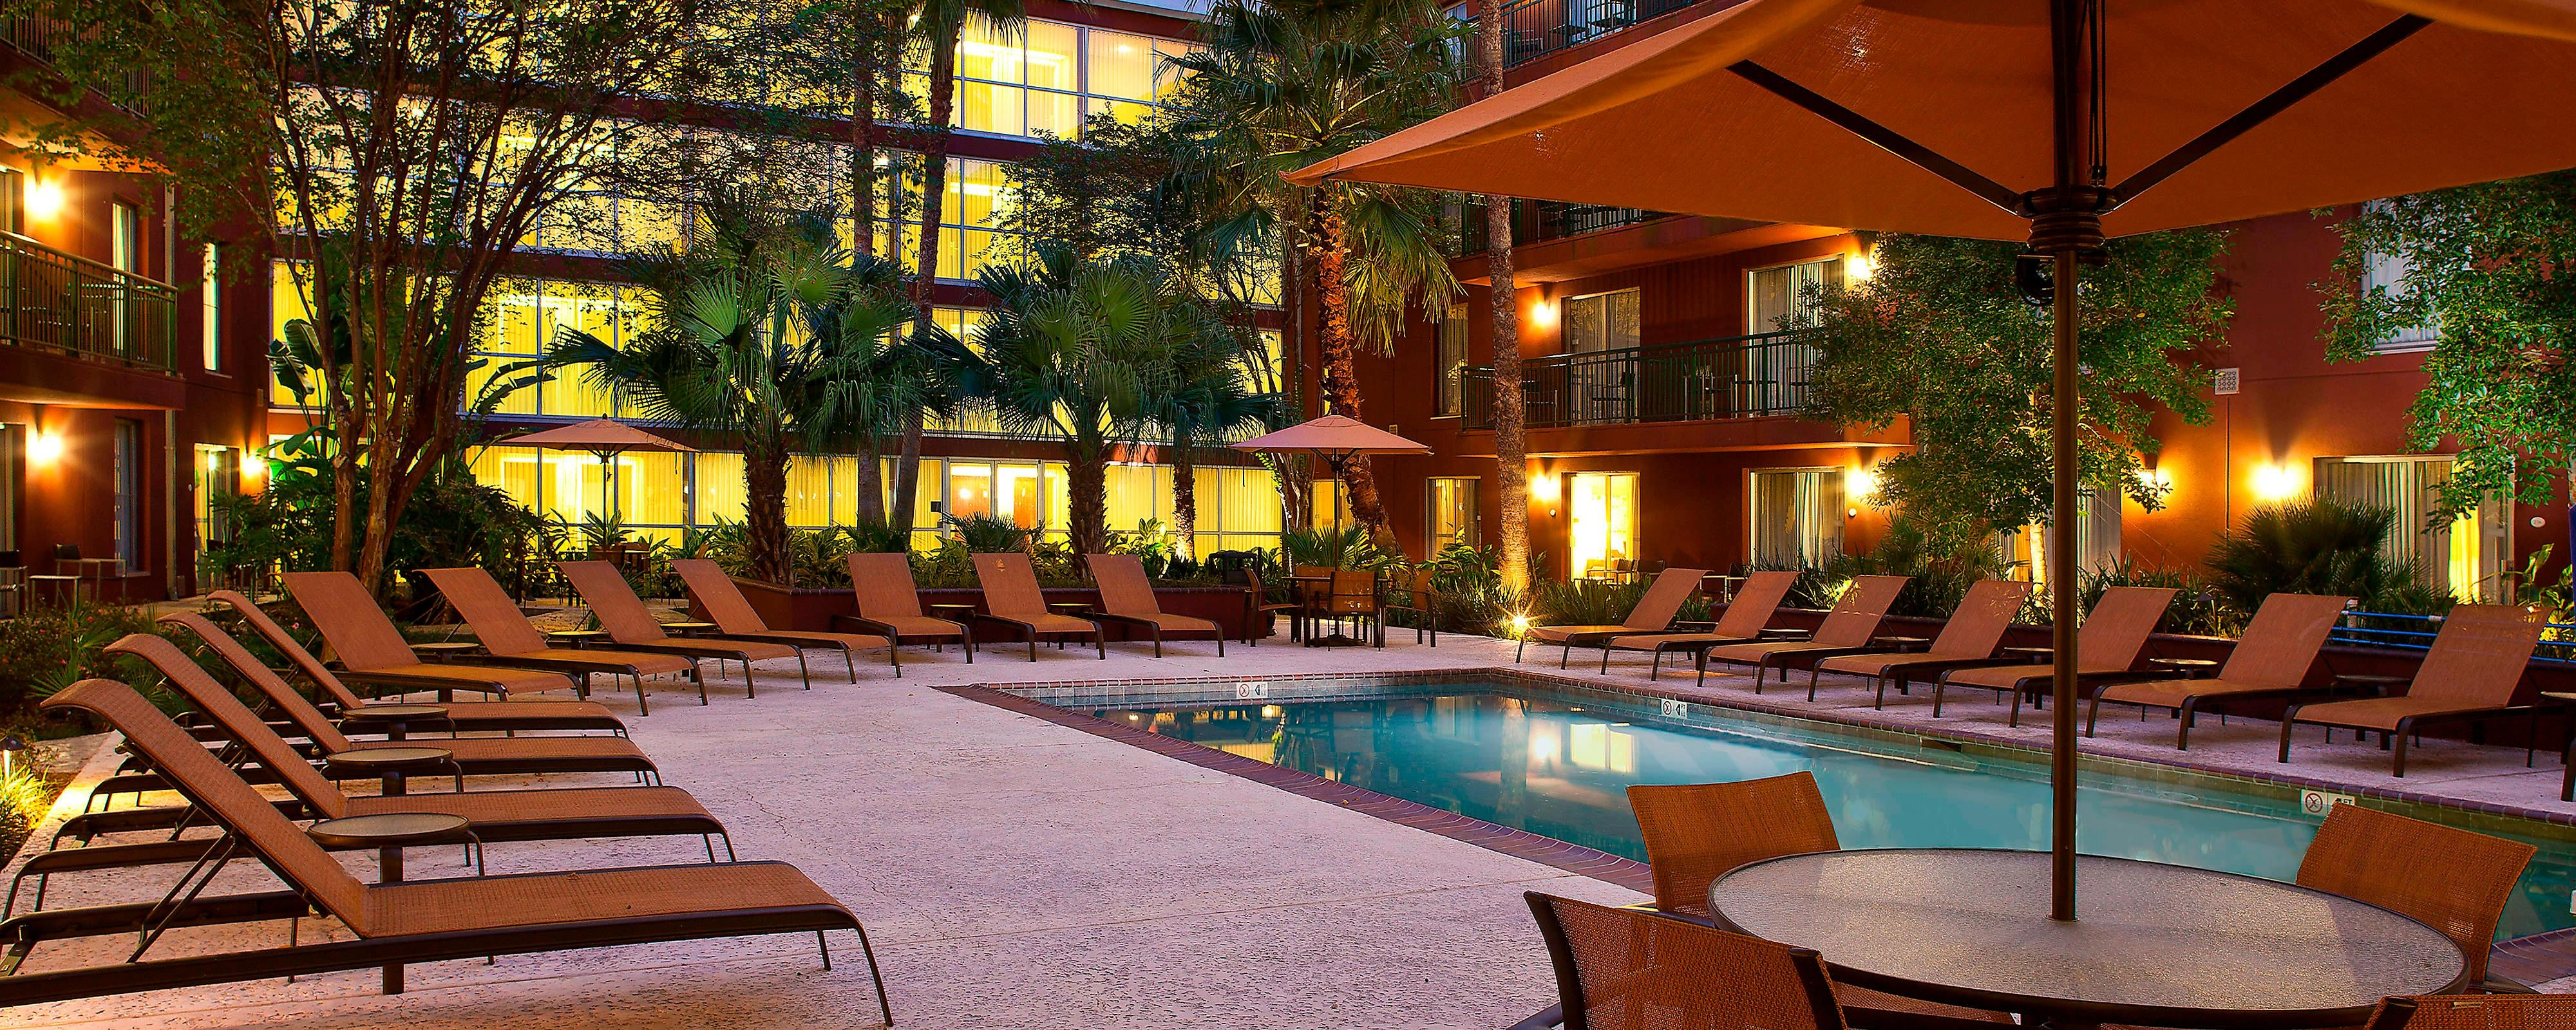 New Orleans Hotel With Pool Courtyard New Orleans Downtown Convention Center